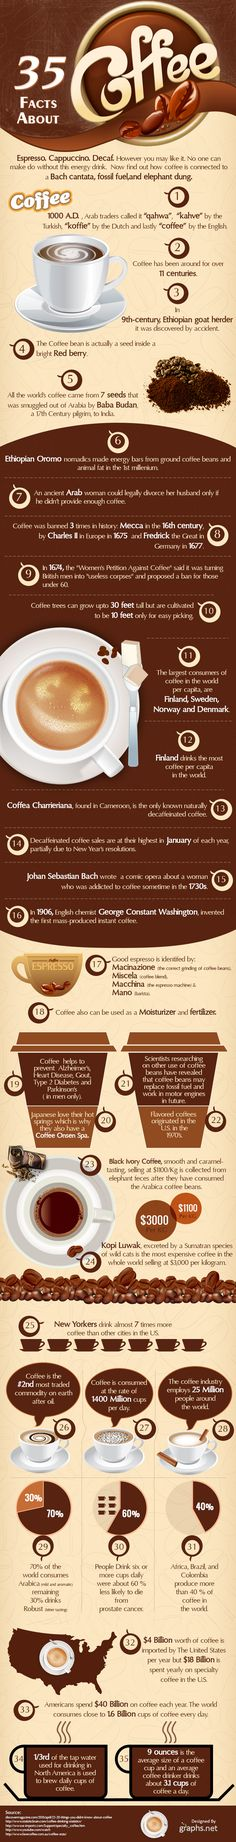 ...35 Facts About Coffee and a delicious recipe for Morning Joe in the Raw!! #coffee #morning #morningjoe...